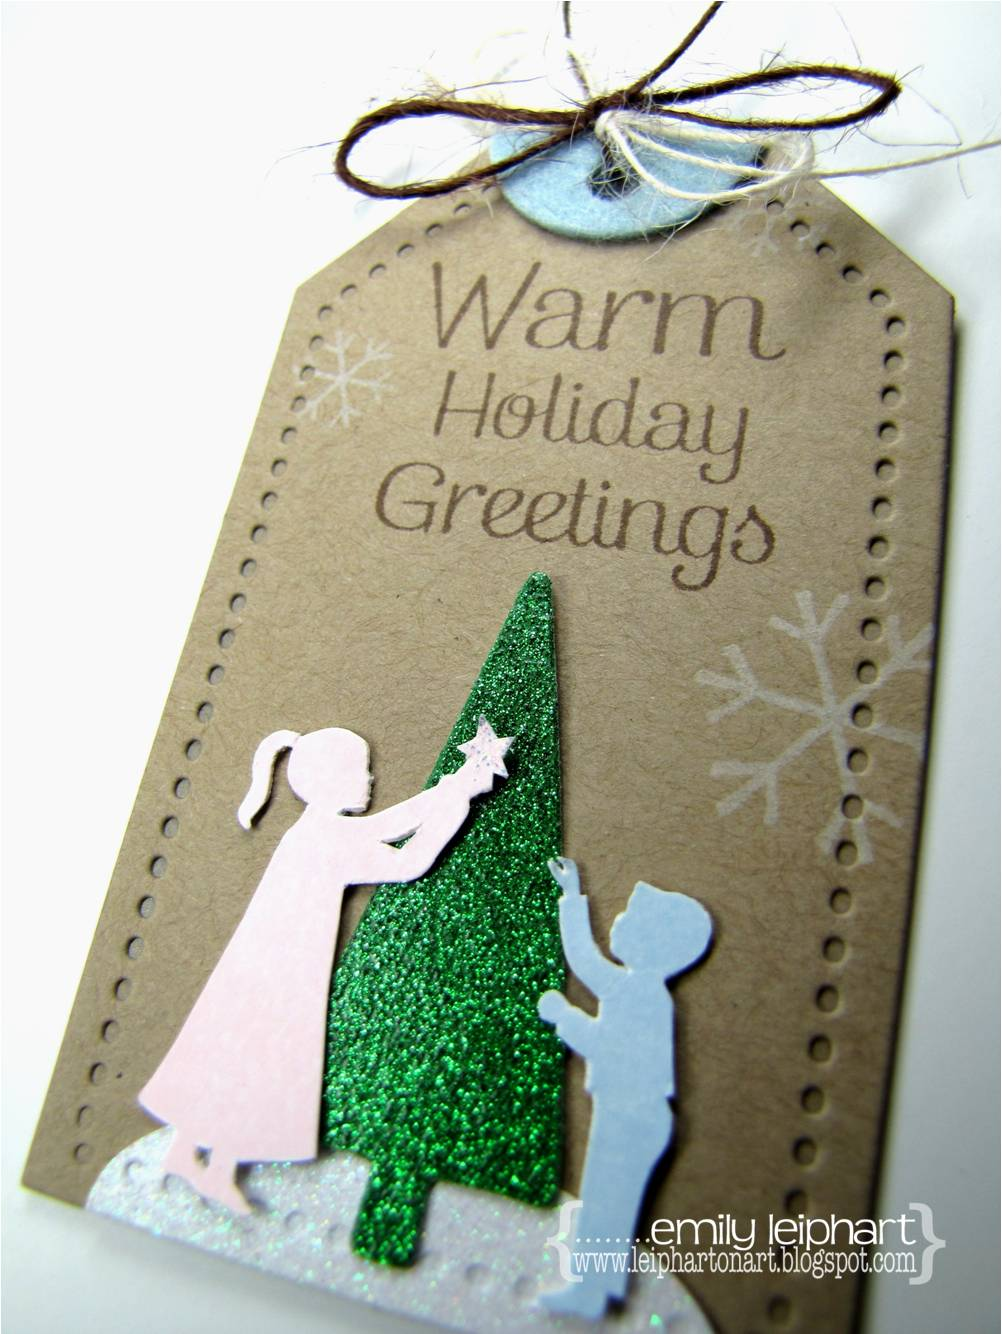 Artfromtheheart warm holiday greetings to create this tag i first stamped the kids from warm holiday greetings in pink and blue and painstakingly fussy cut them i had thought to myself that i kristyandbryce Gallery